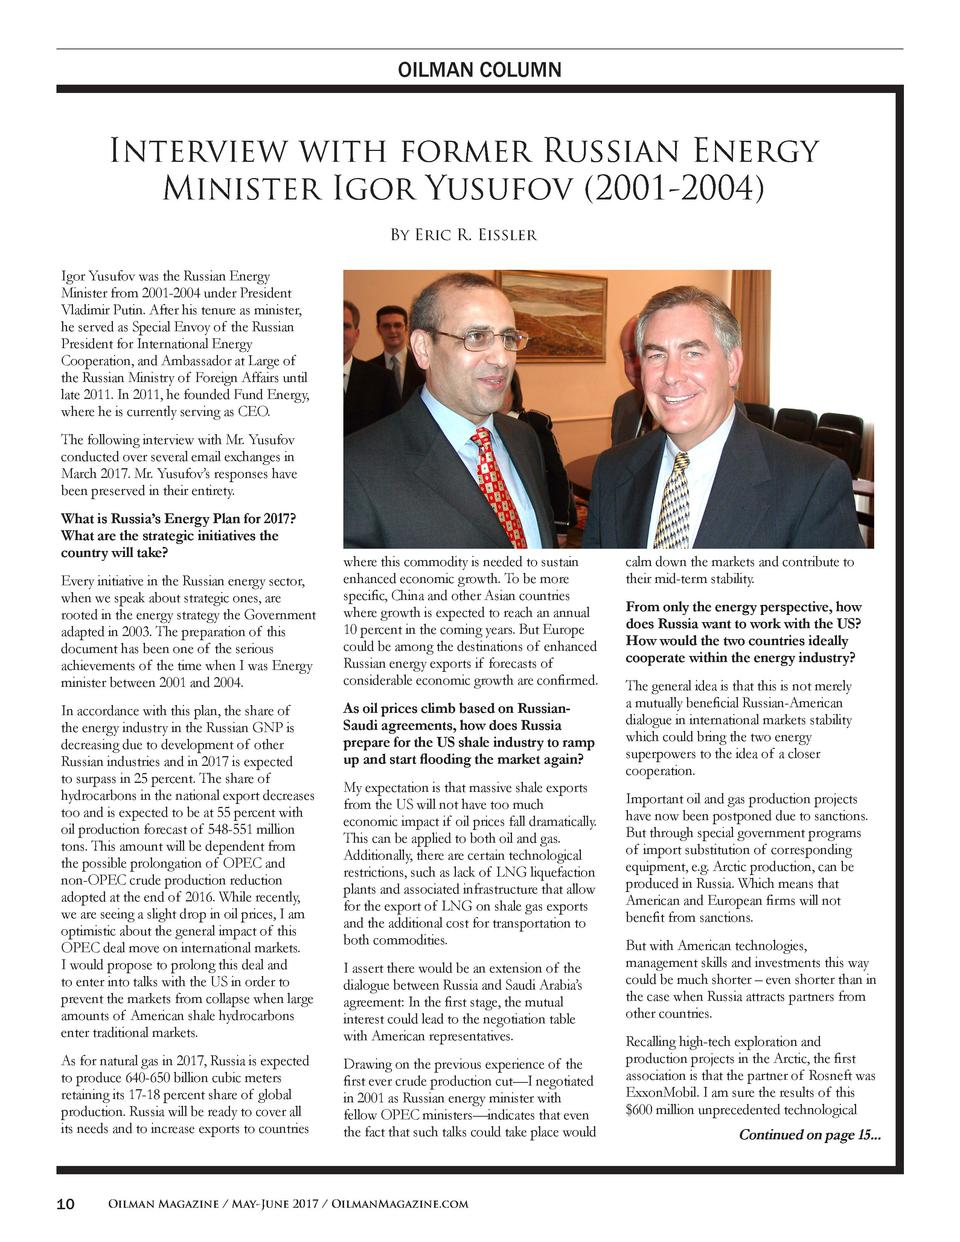 OILMAN COLUMN  Interview with former Russian Energy Minister Igor Yusufov  2001-2004  By Eric R. Eissler Igor Yusufov was ...